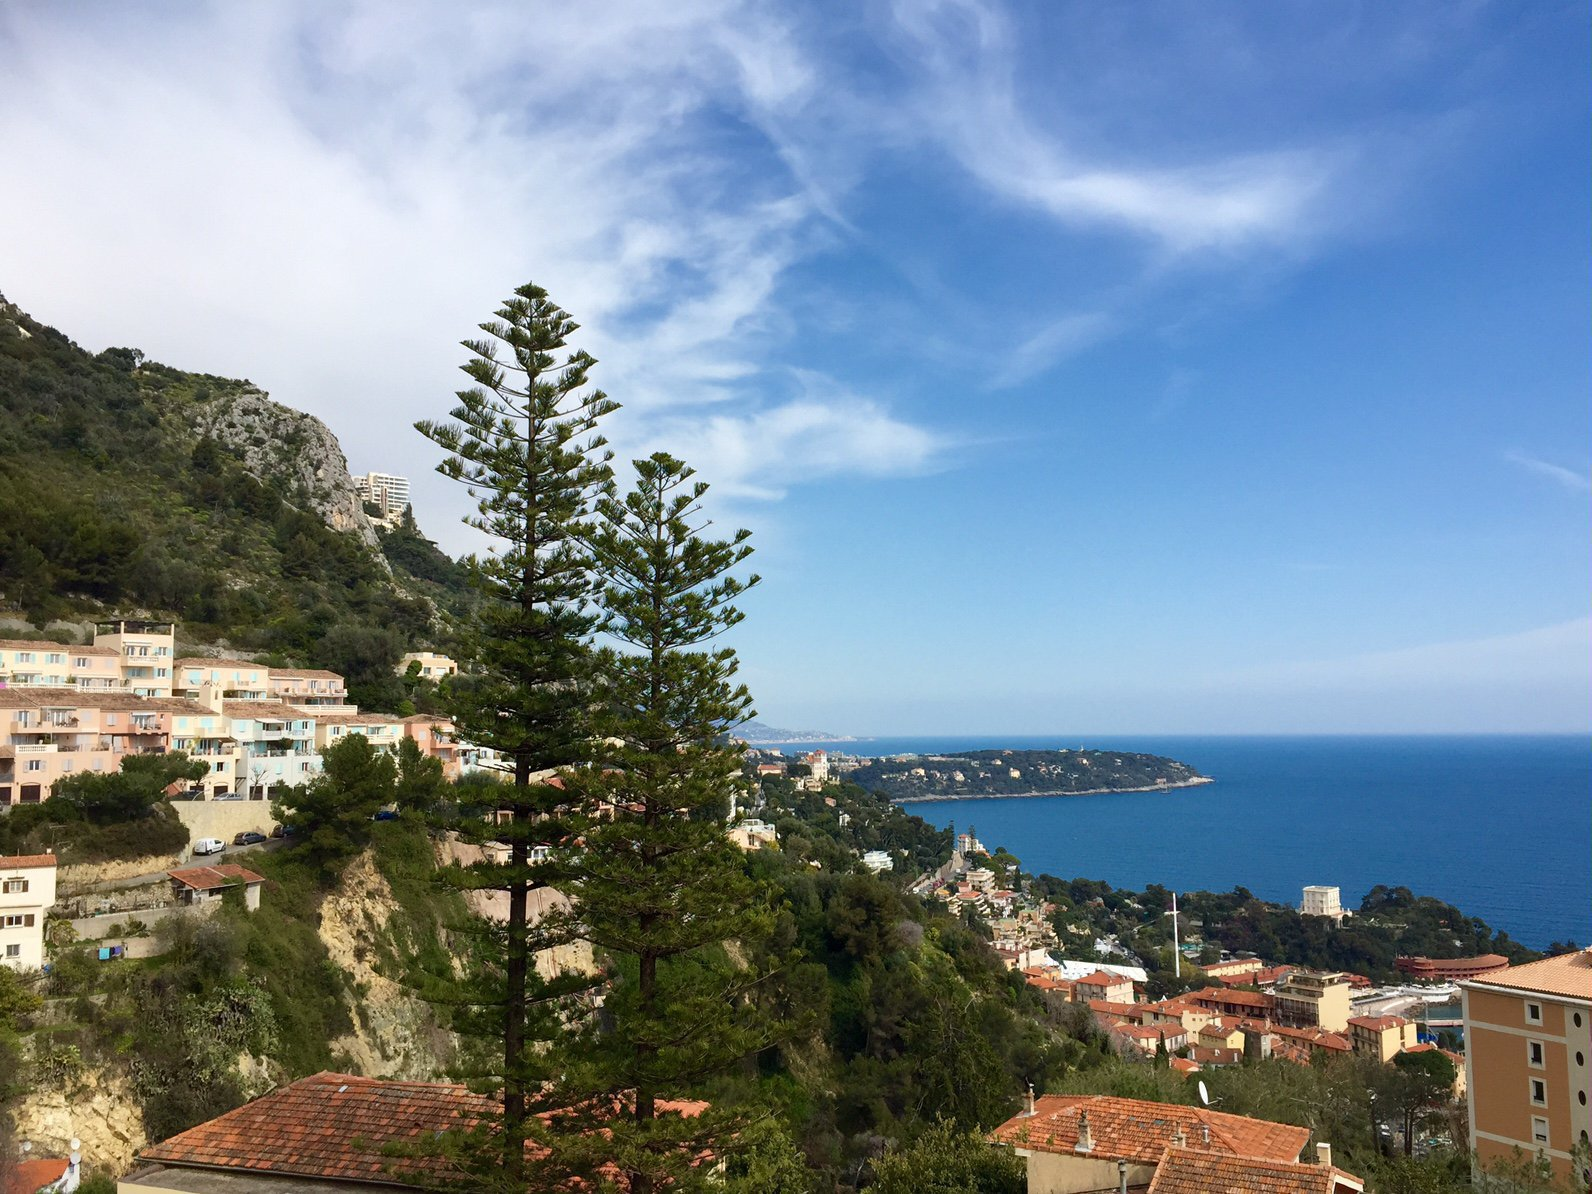 BEAUSOLEIL - Frecnh Riviera - 3 bed Apartment - sea view